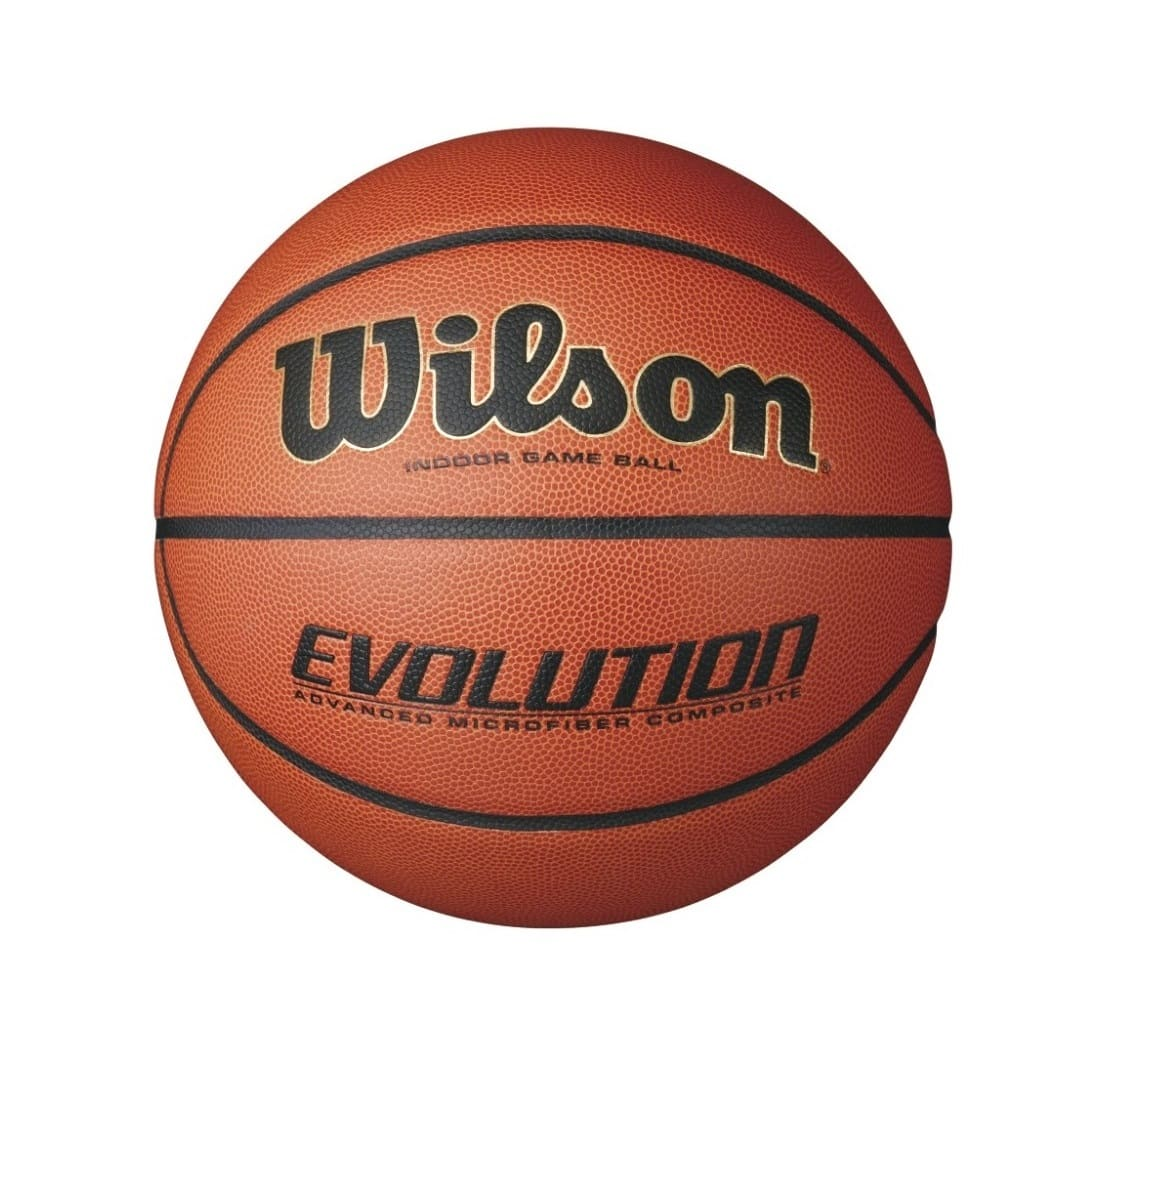 Wilson Evolution Indoor Game Ball $38 - Free Shipping - Google Express App